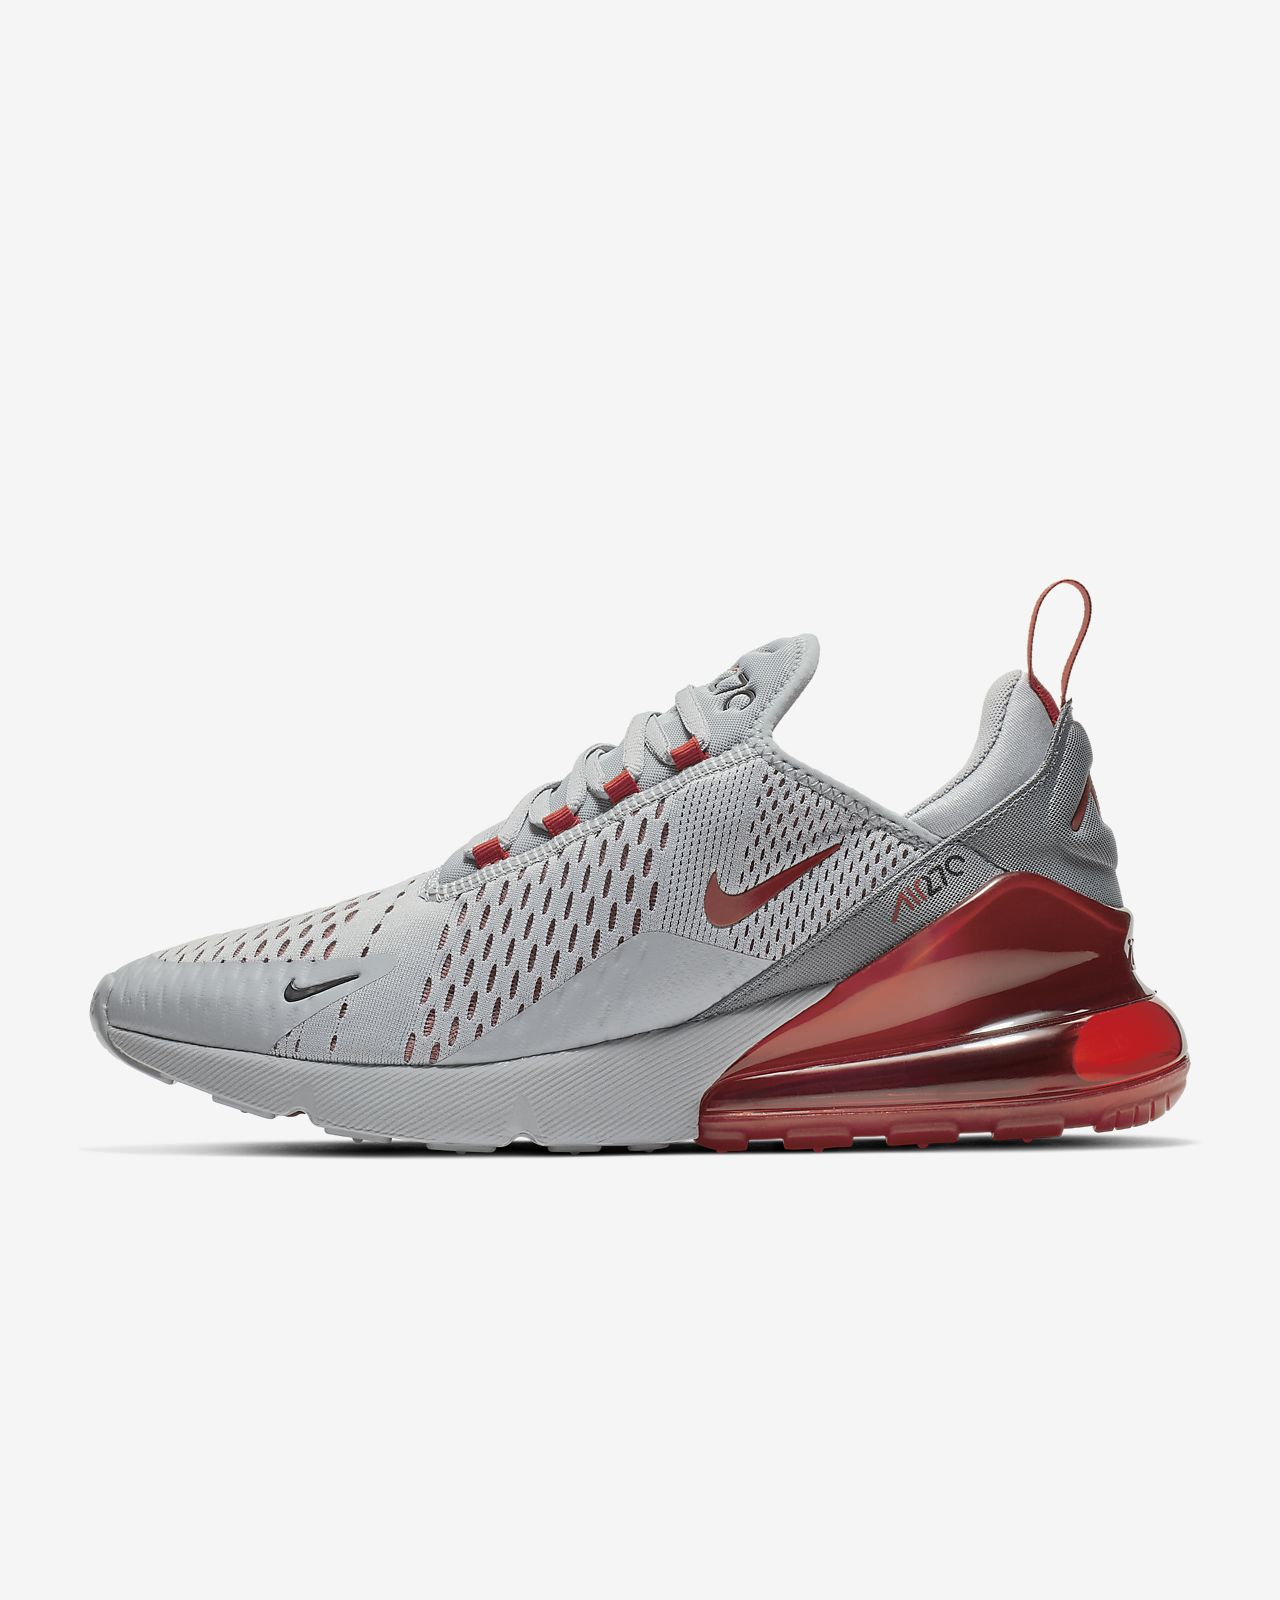 87c290b5f87 Nike Air Max 270 Men s Shoe. Nike.com MY